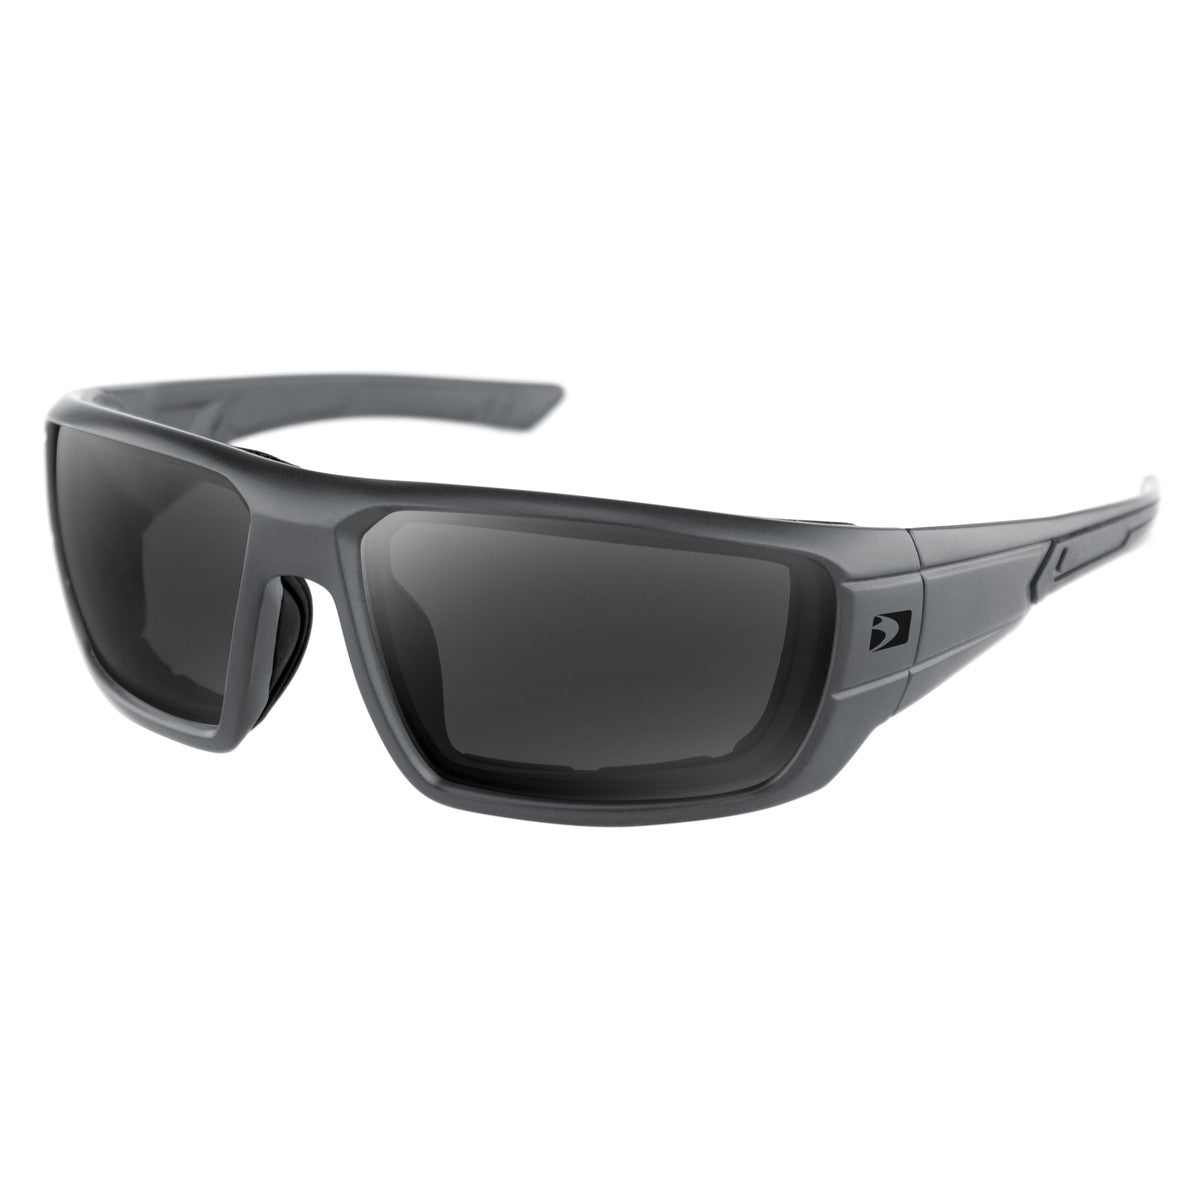 Bobster Mission Sunglasses